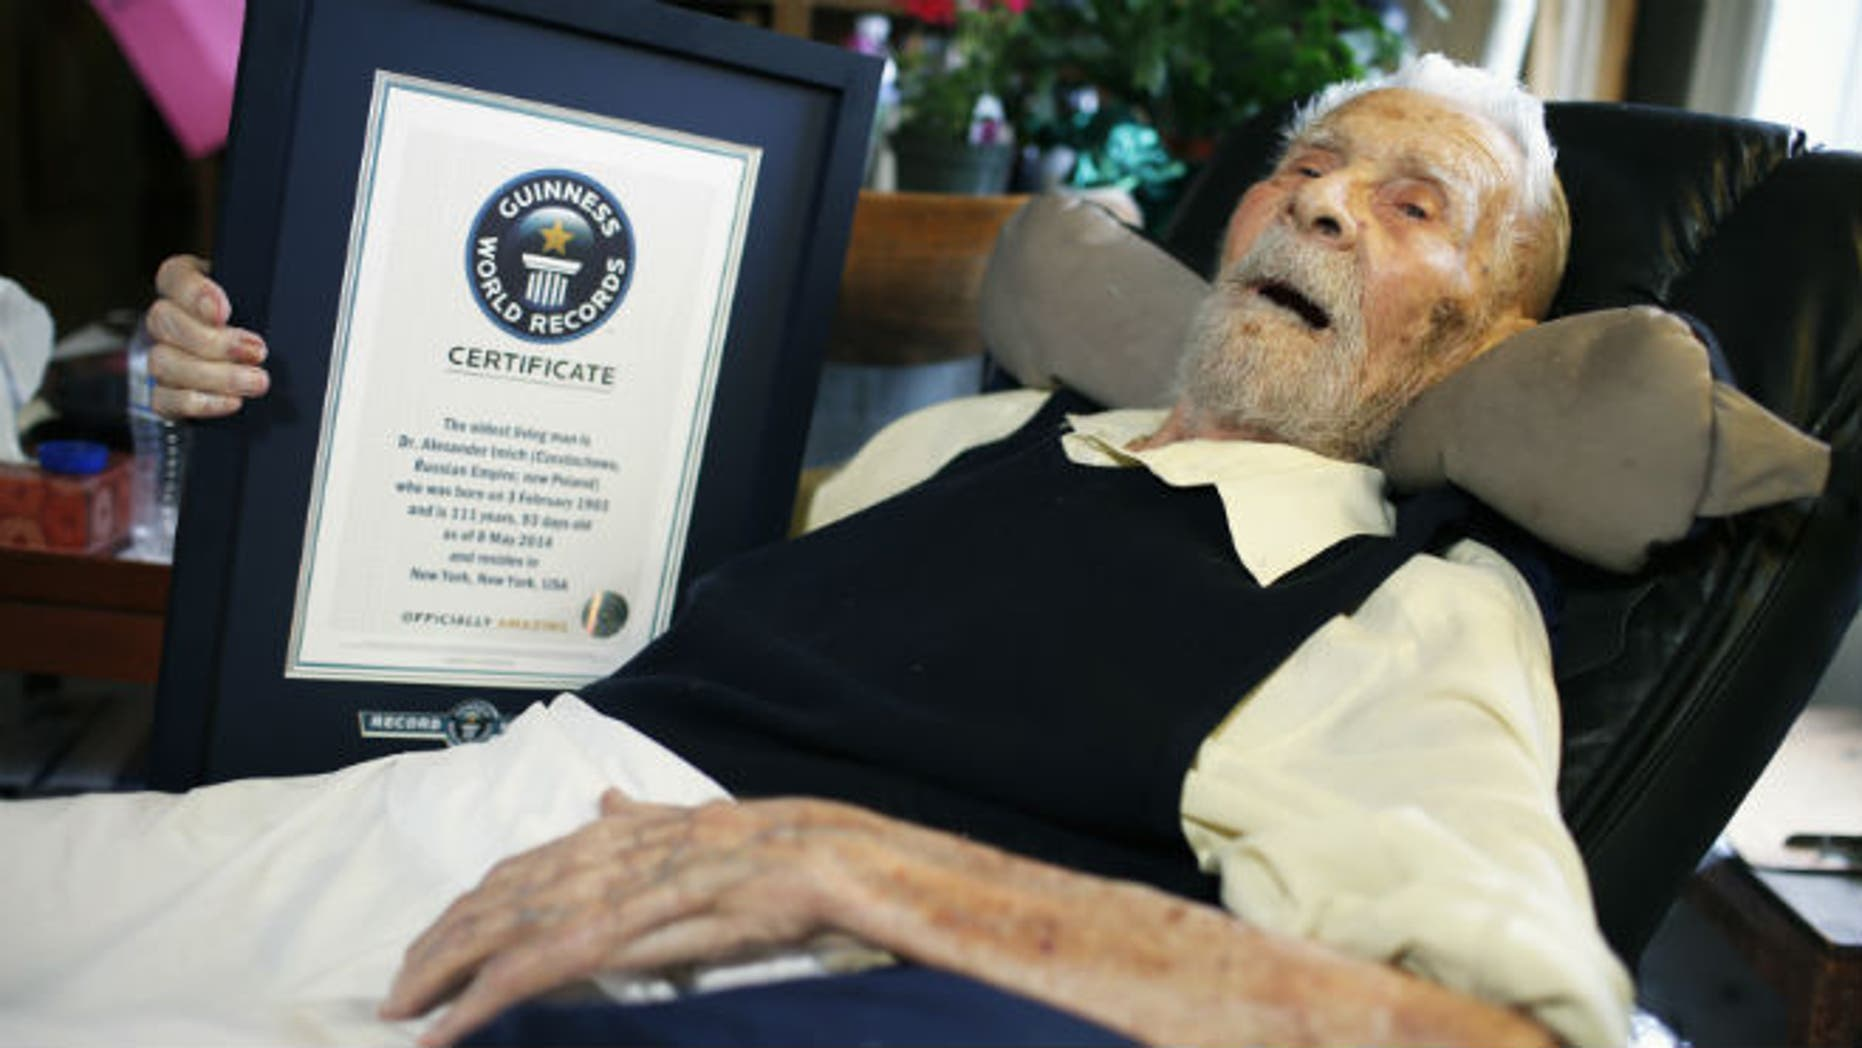 111-year-old Alexander Imich holds a Guinness World Records certificate recognizing him as the world's oldest living man; he passed away on June 8. (REUTERS/Mike Segar)